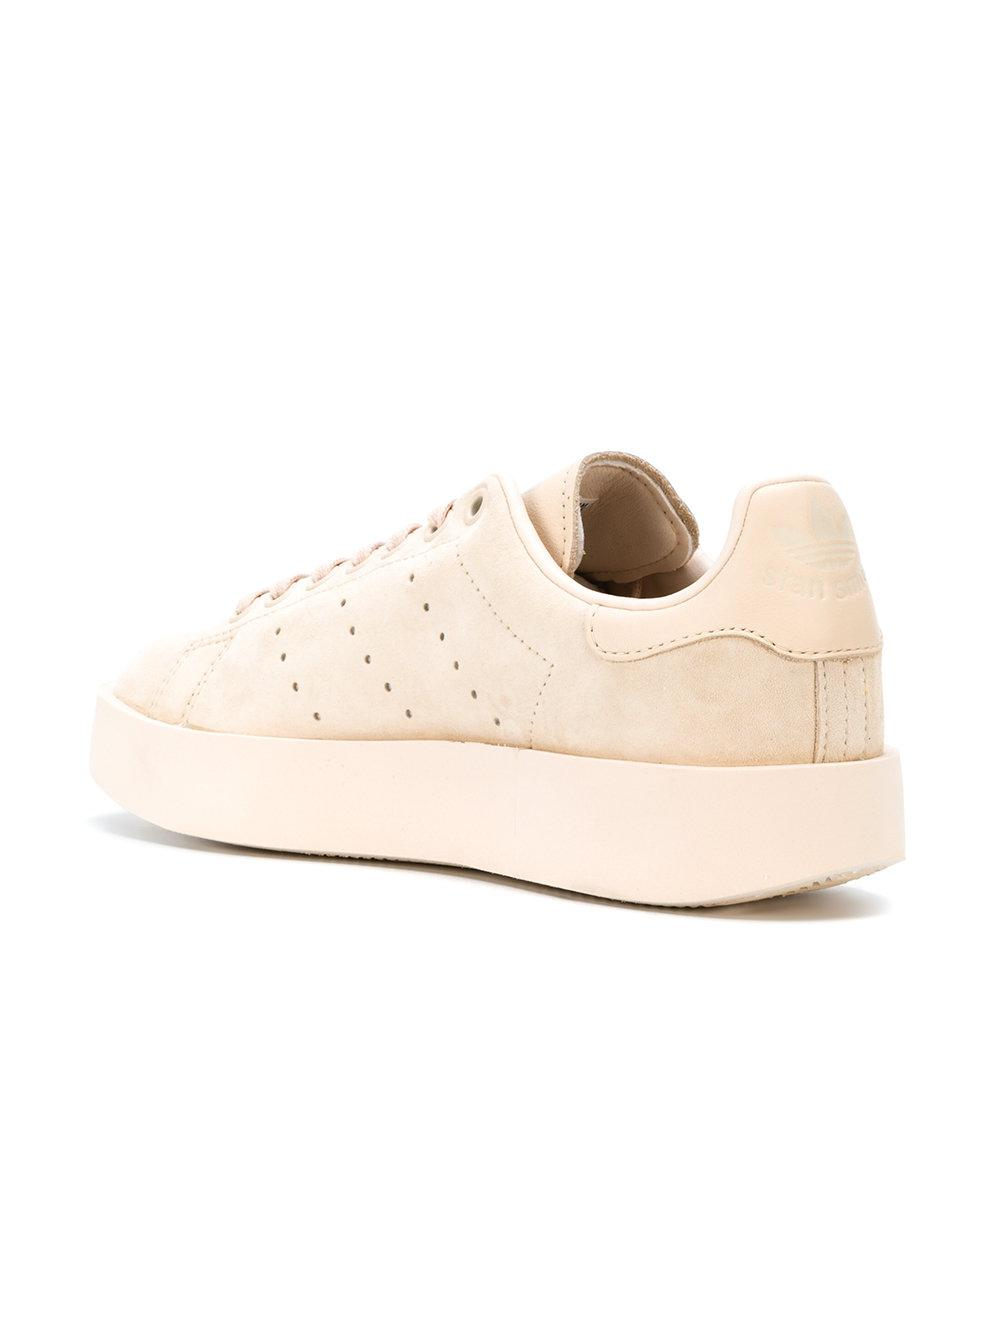 adidas Originals Linen Stan Smith Bold Sneakers in Natural